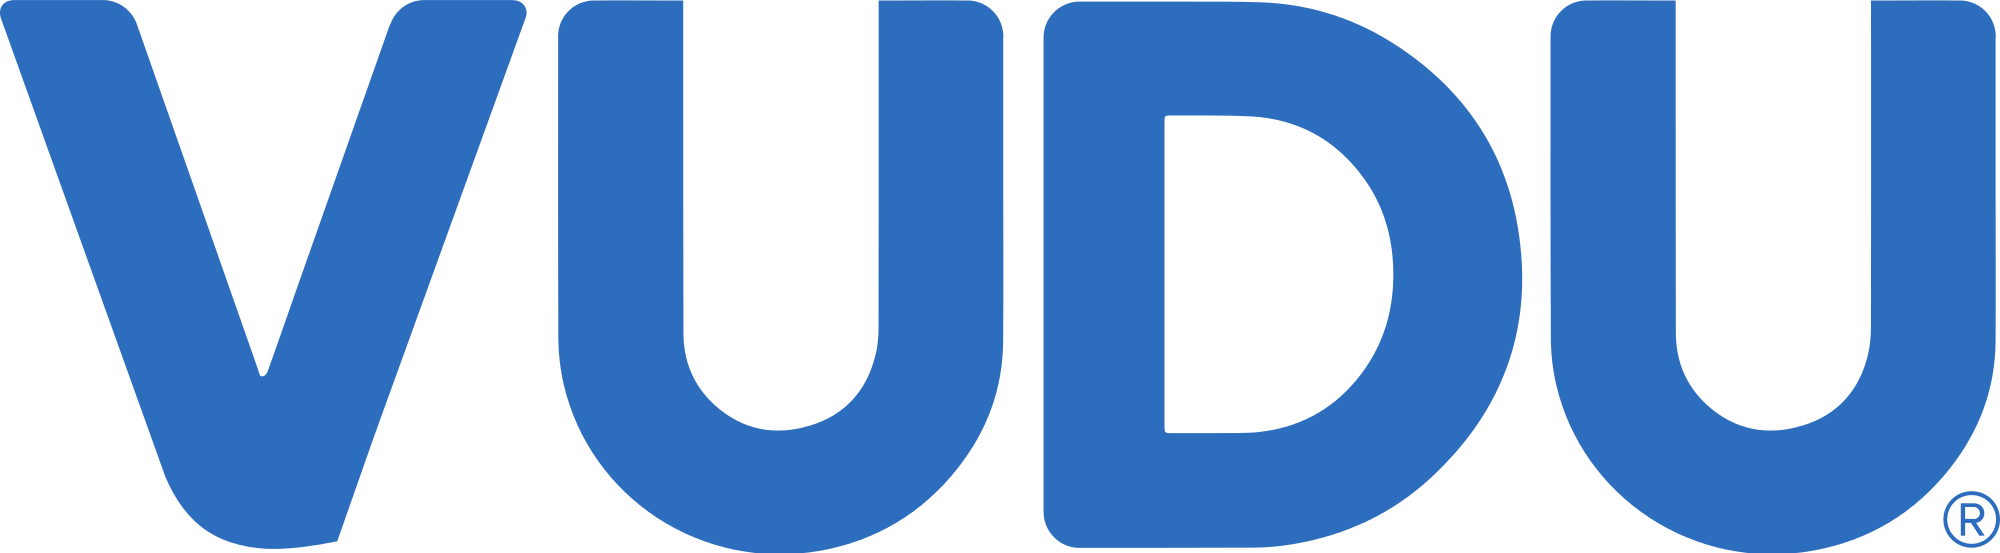 VUDU logo BED & BREAKFAST